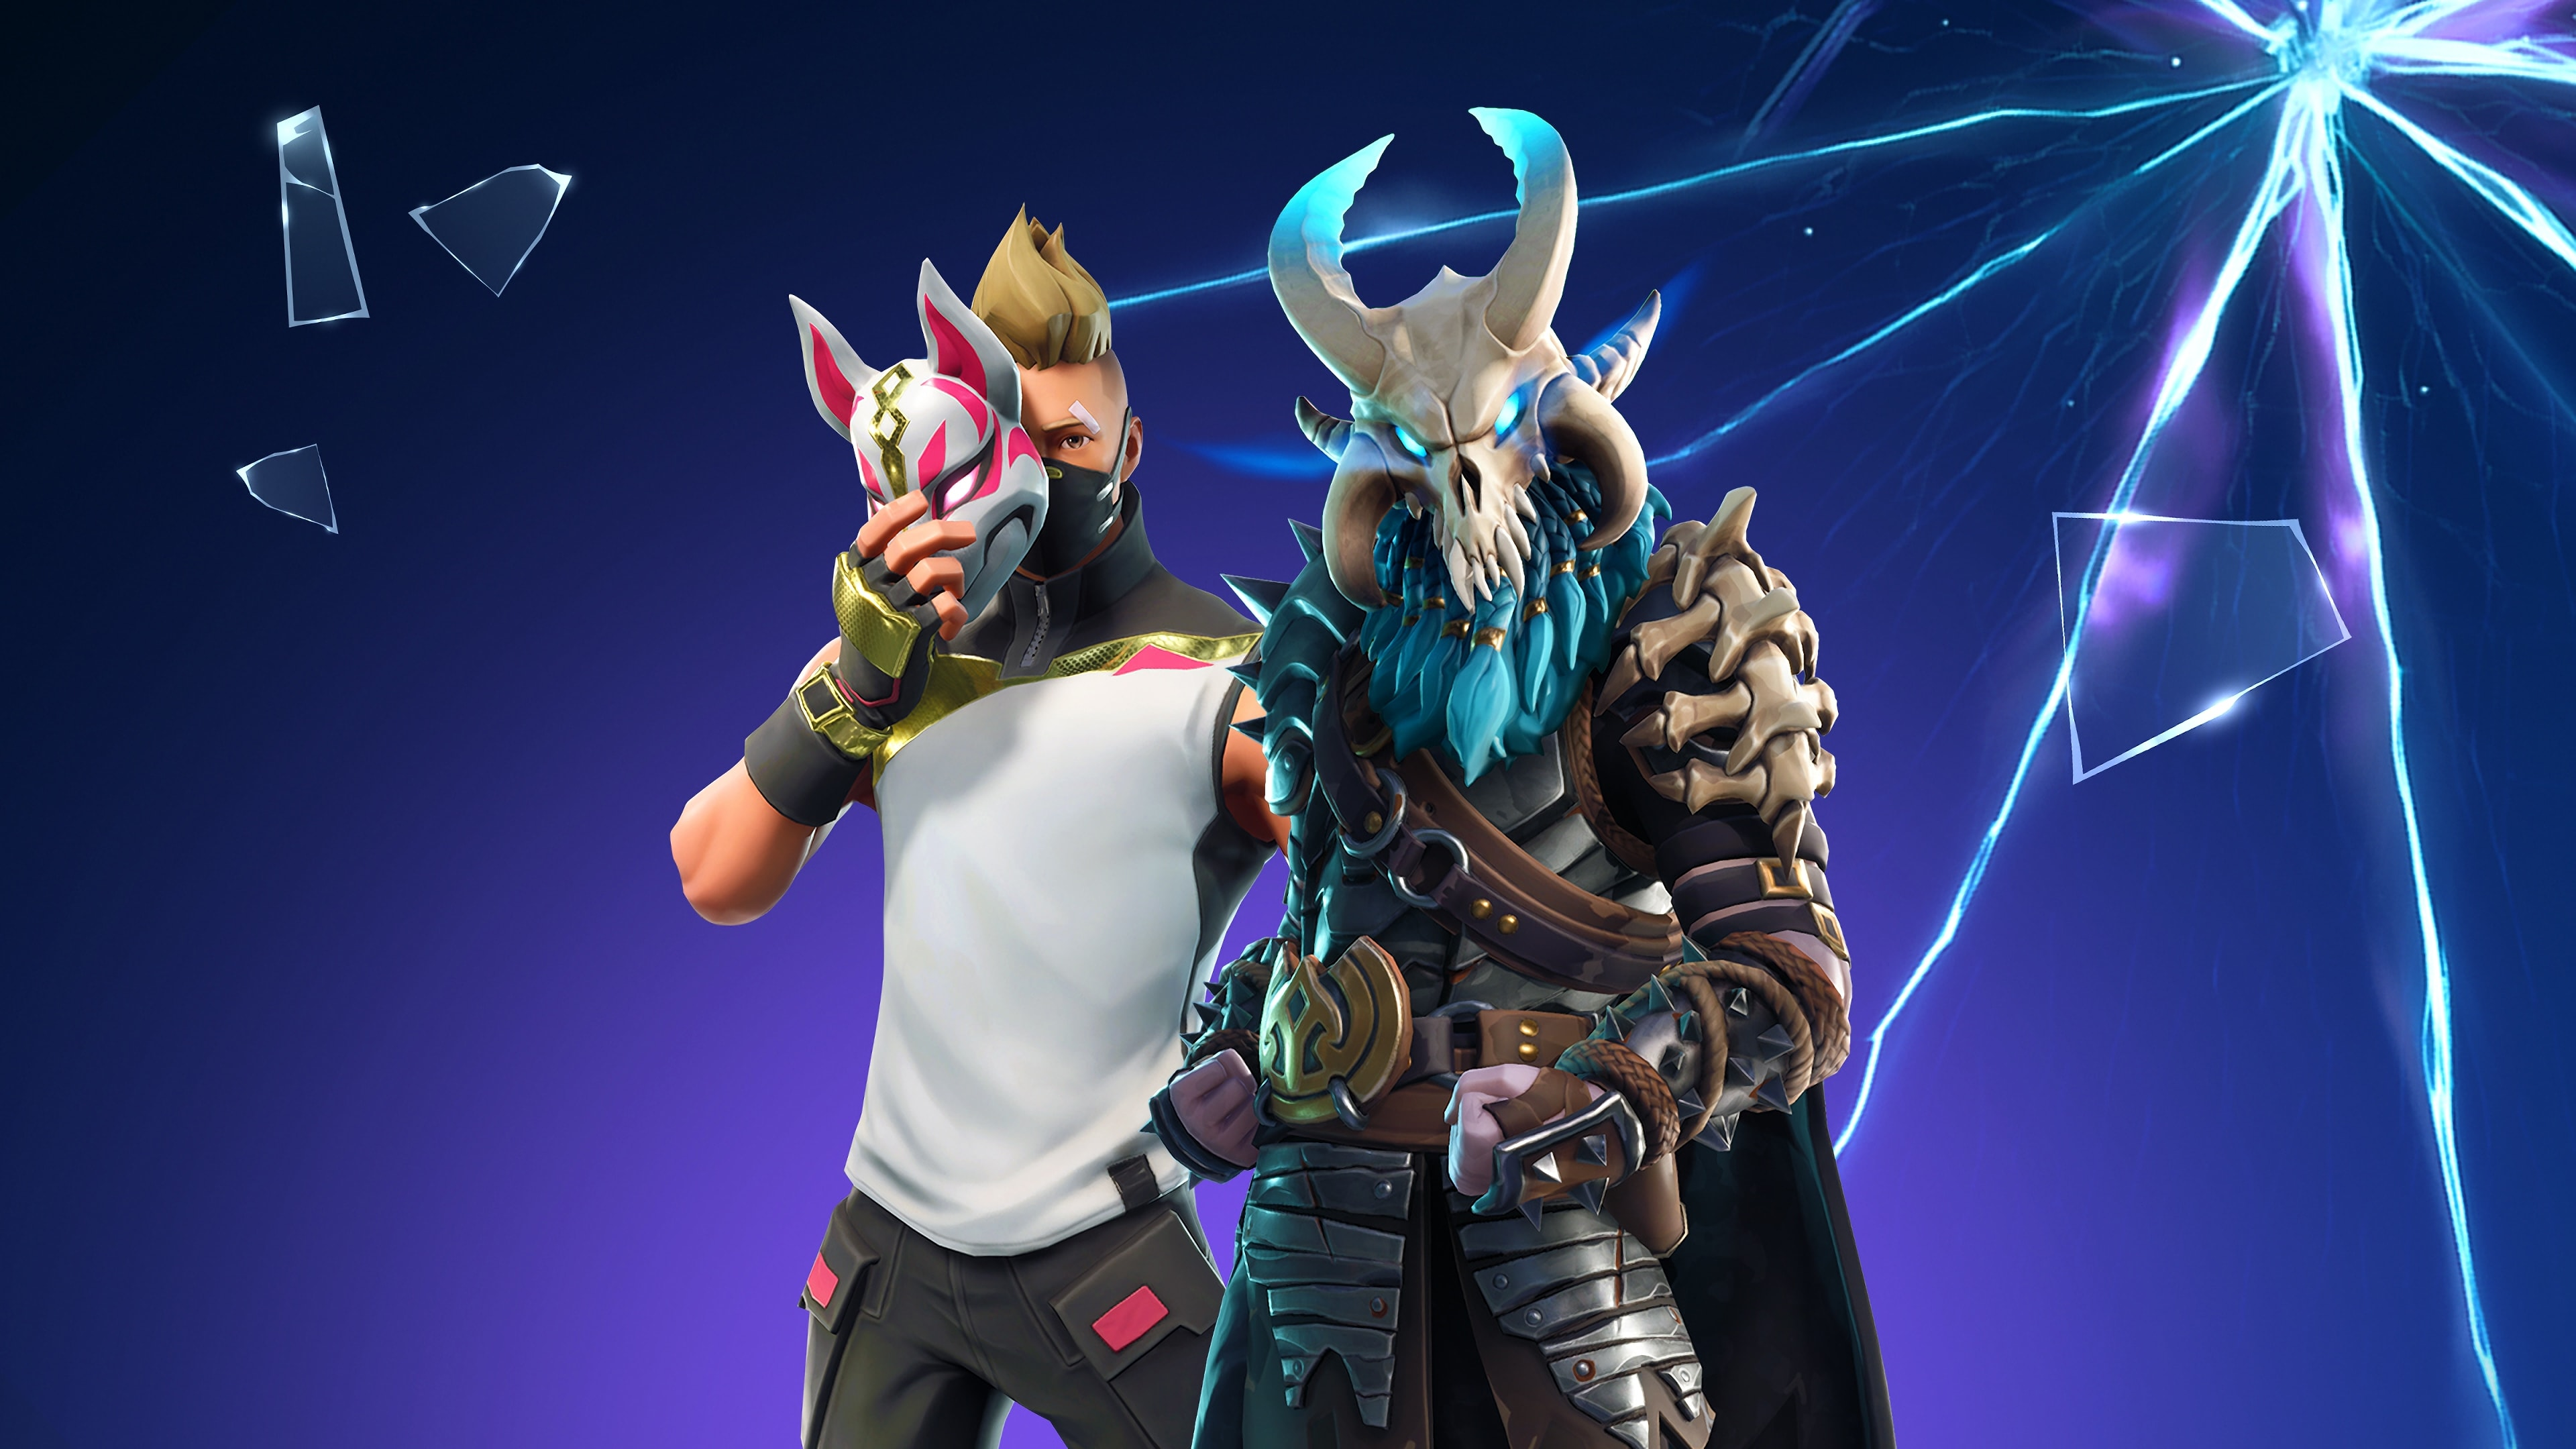 PUBG and Fortnite got banned by the Chinese Government